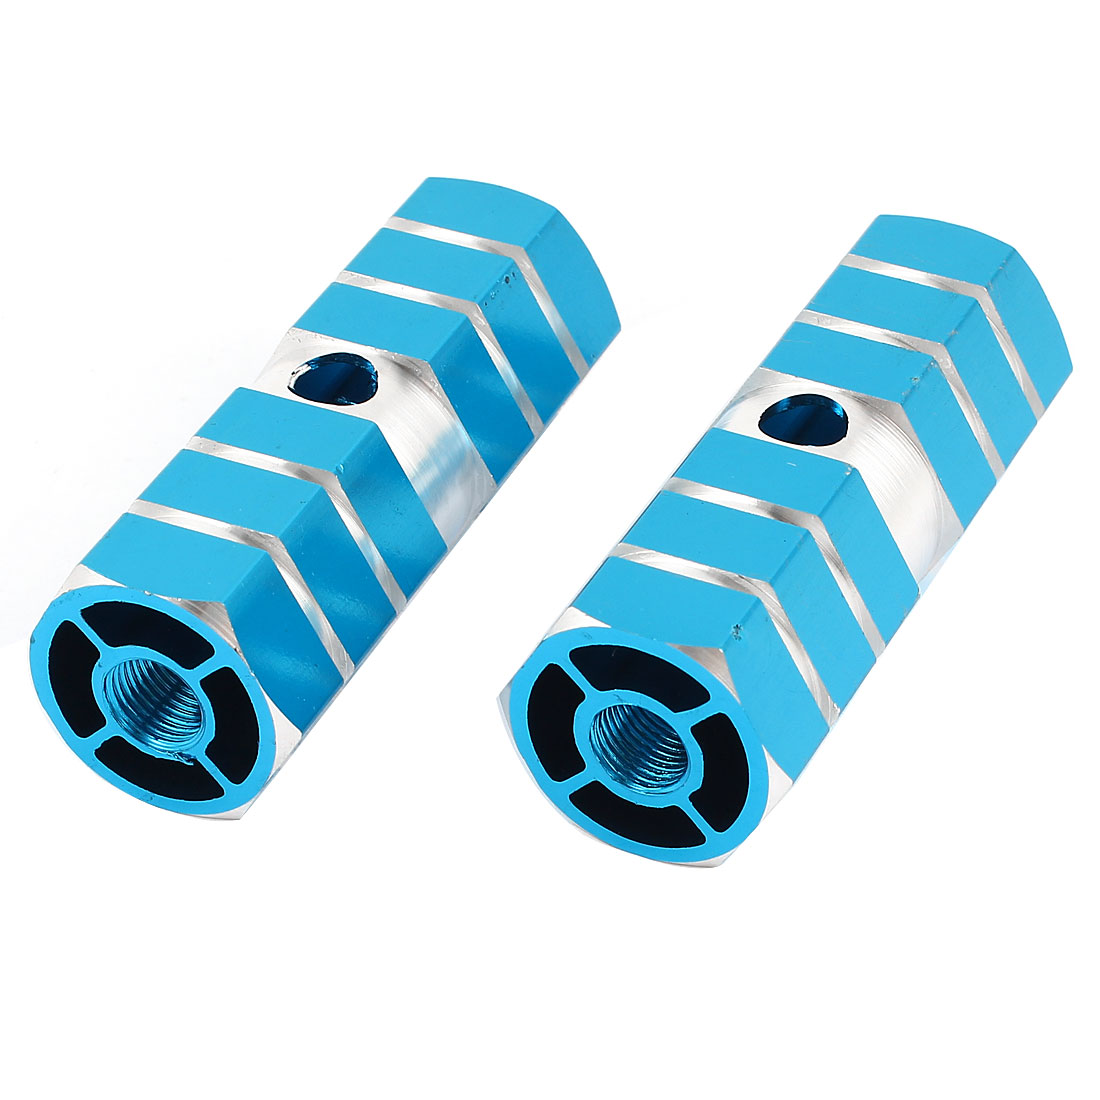 2 Pcs 8.5mm Axle Hole Thread Dia Blue Hexagonal Aluminum BMX Mountain Bicycle Rear Axle Foot Pegs